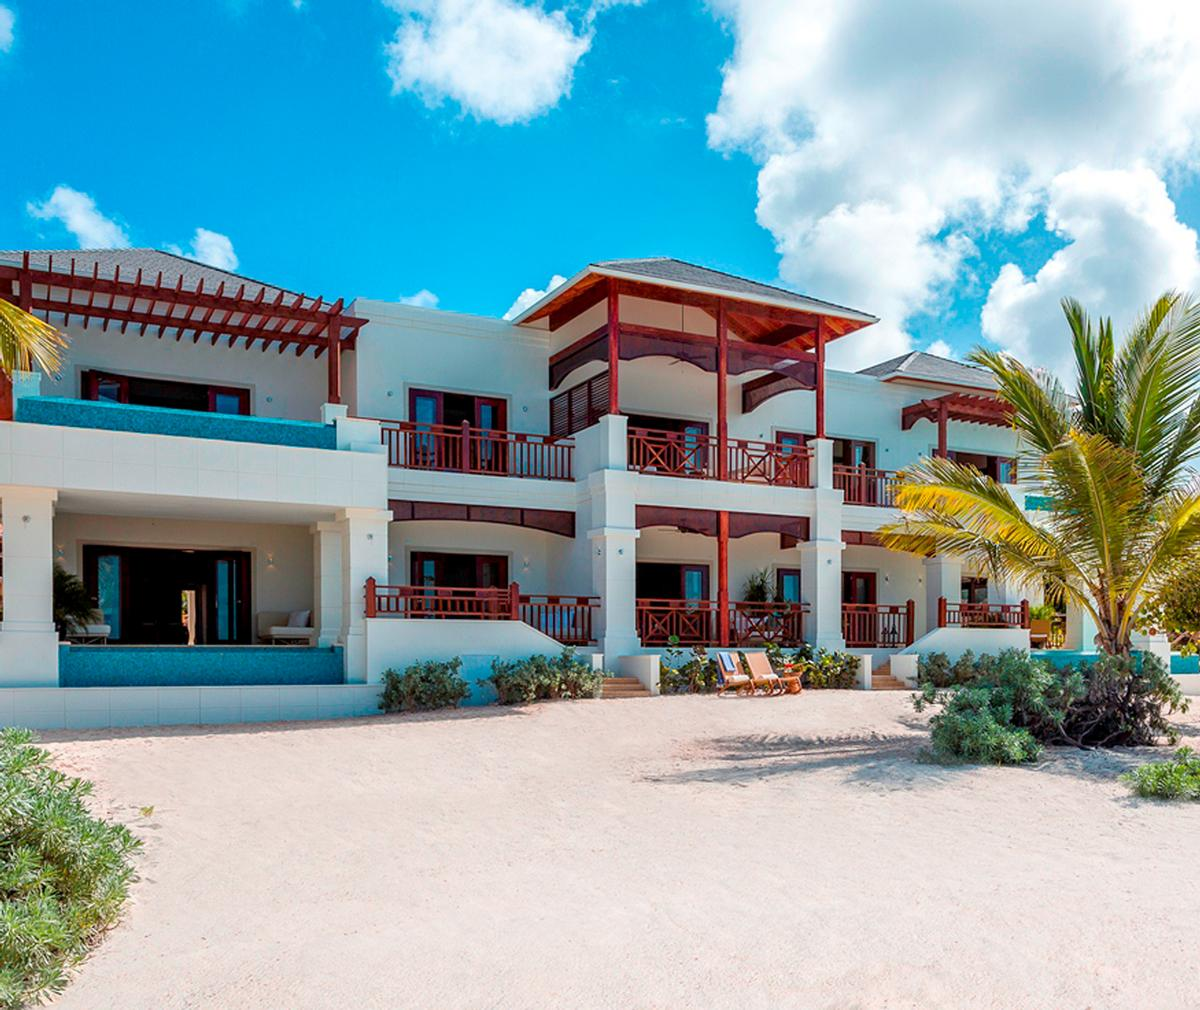 Designed by Caribbean architect Lane Pettigrew, Zemi Beach House's architecture was inspired by Anguilla's natural environment, blending modern, clean lines with classic Caribbean building details / Thierry DeHove Zemi Beach